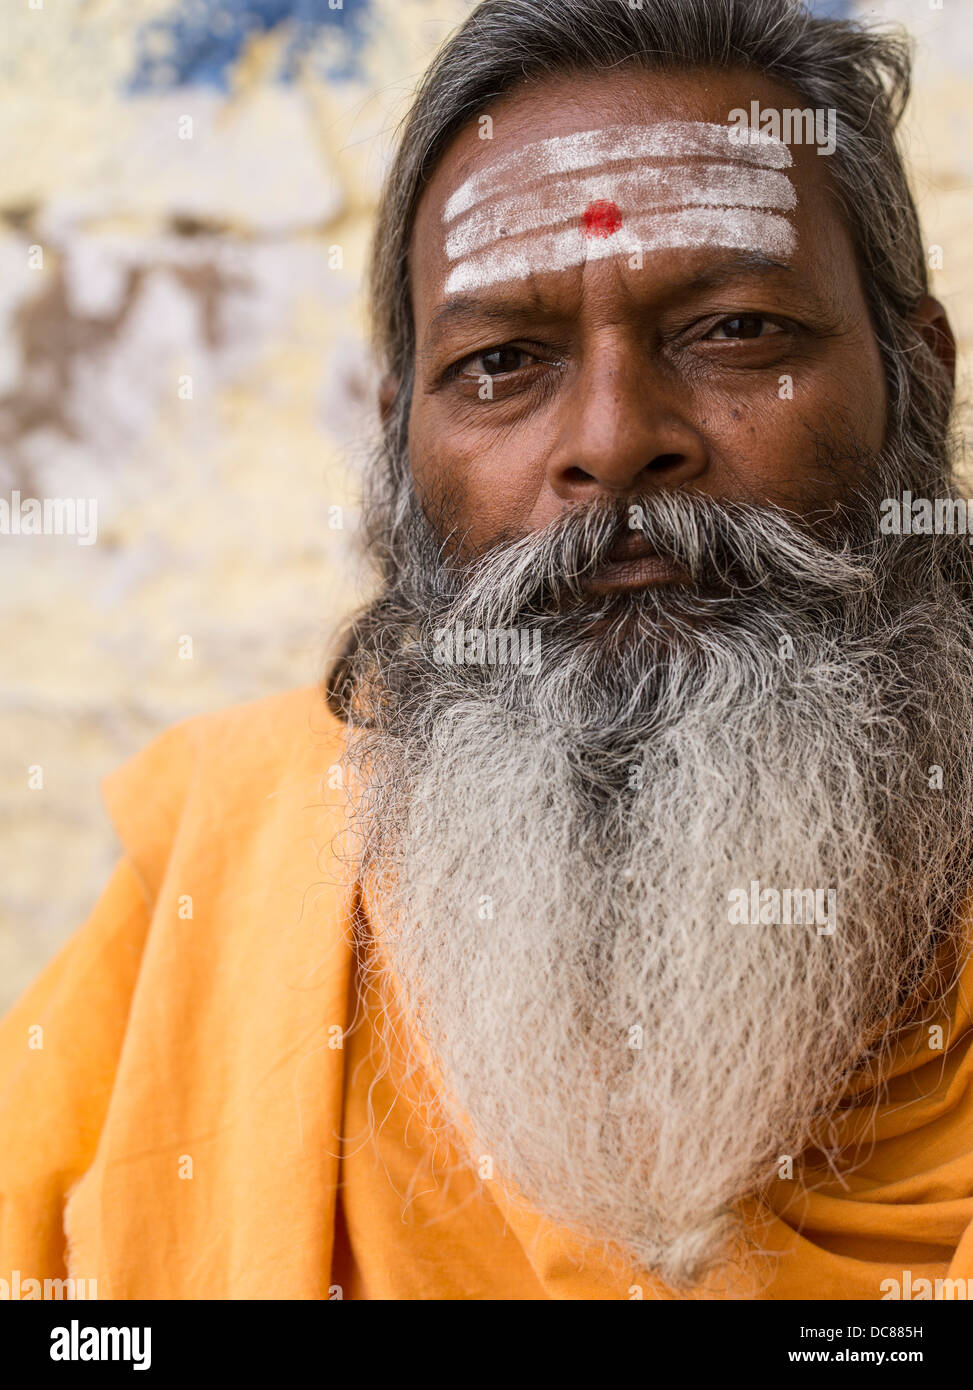 Sadhu holy man on the banks of the Ganges River - Varanasi, India Stock Photo